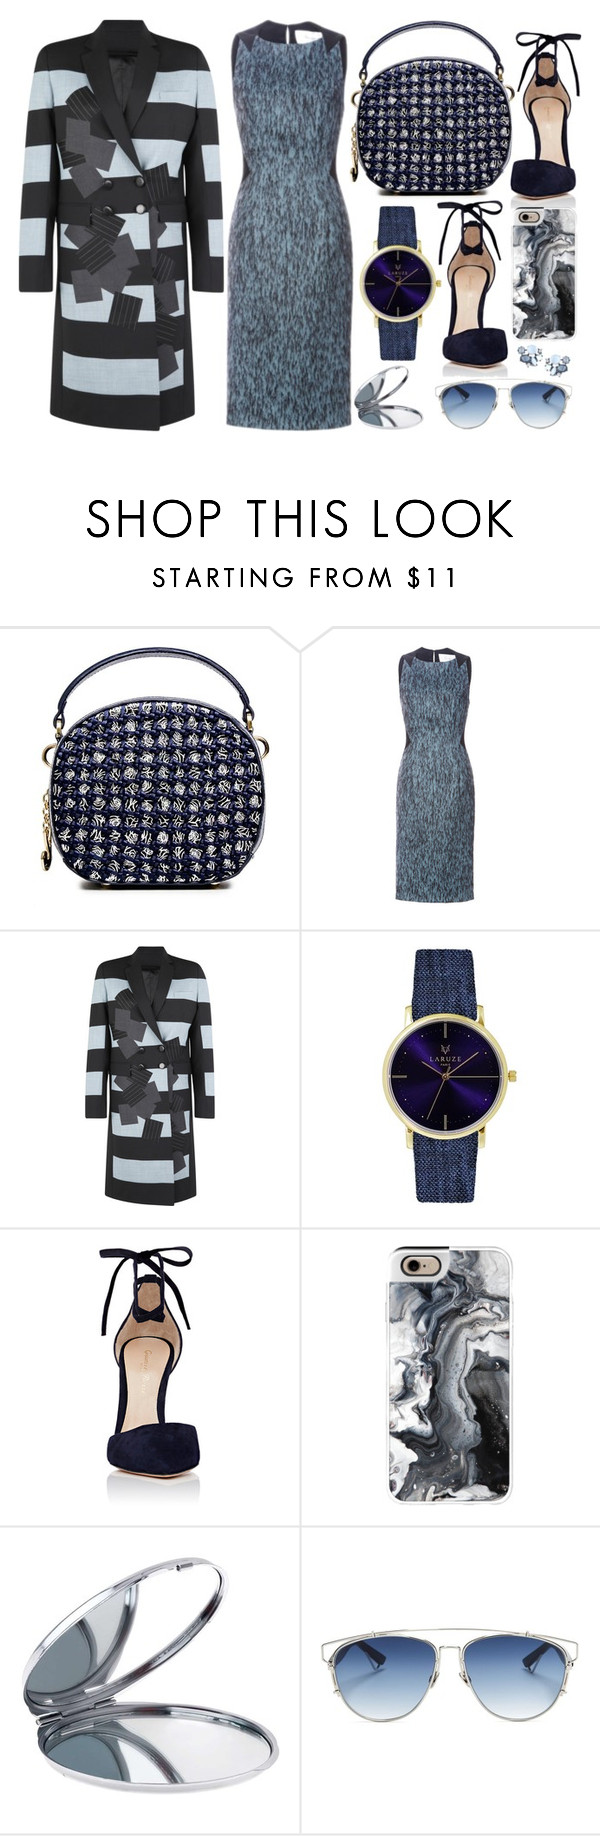 """Unconventional Gradient"" by cherieaustin on Polyvore featuring Carolina Herrera, Jonathan Saunders, Gianvito Rossi, Casetify, Miss Selfridge, Christian Dior and Lydell NYC"